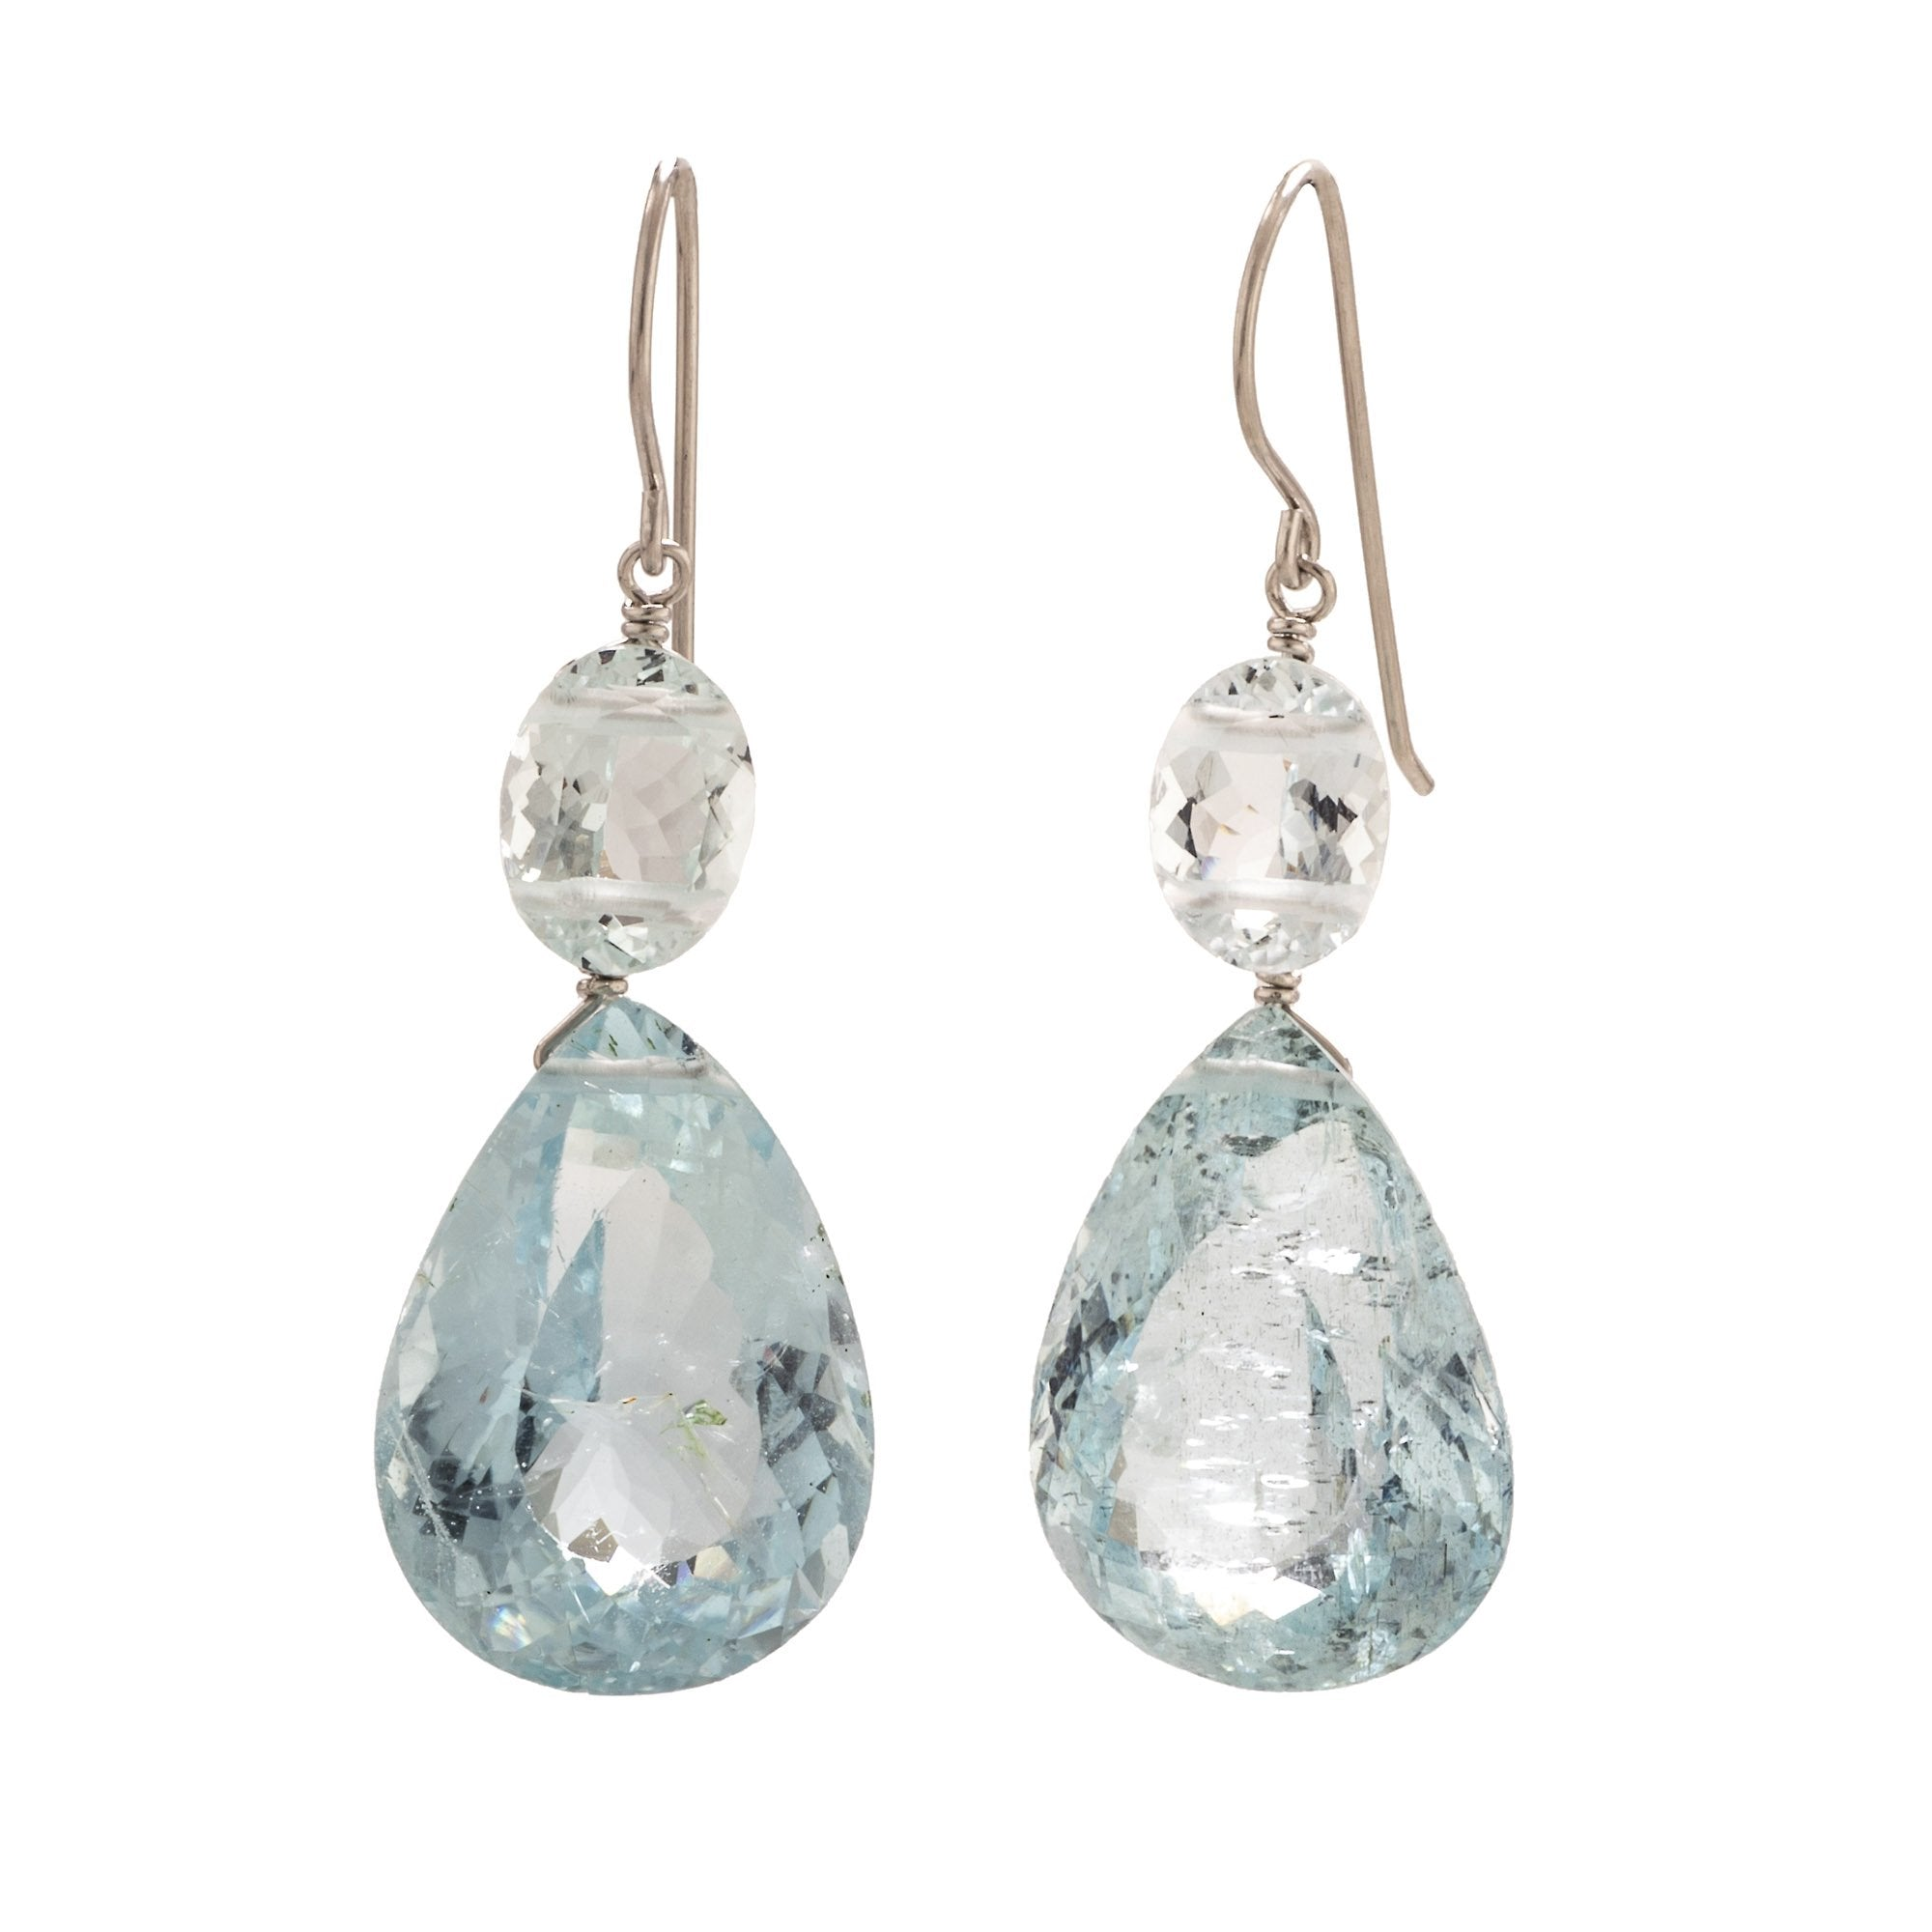 c4263d400 These aquamarine earrings have a wonderful soft denim blue color.